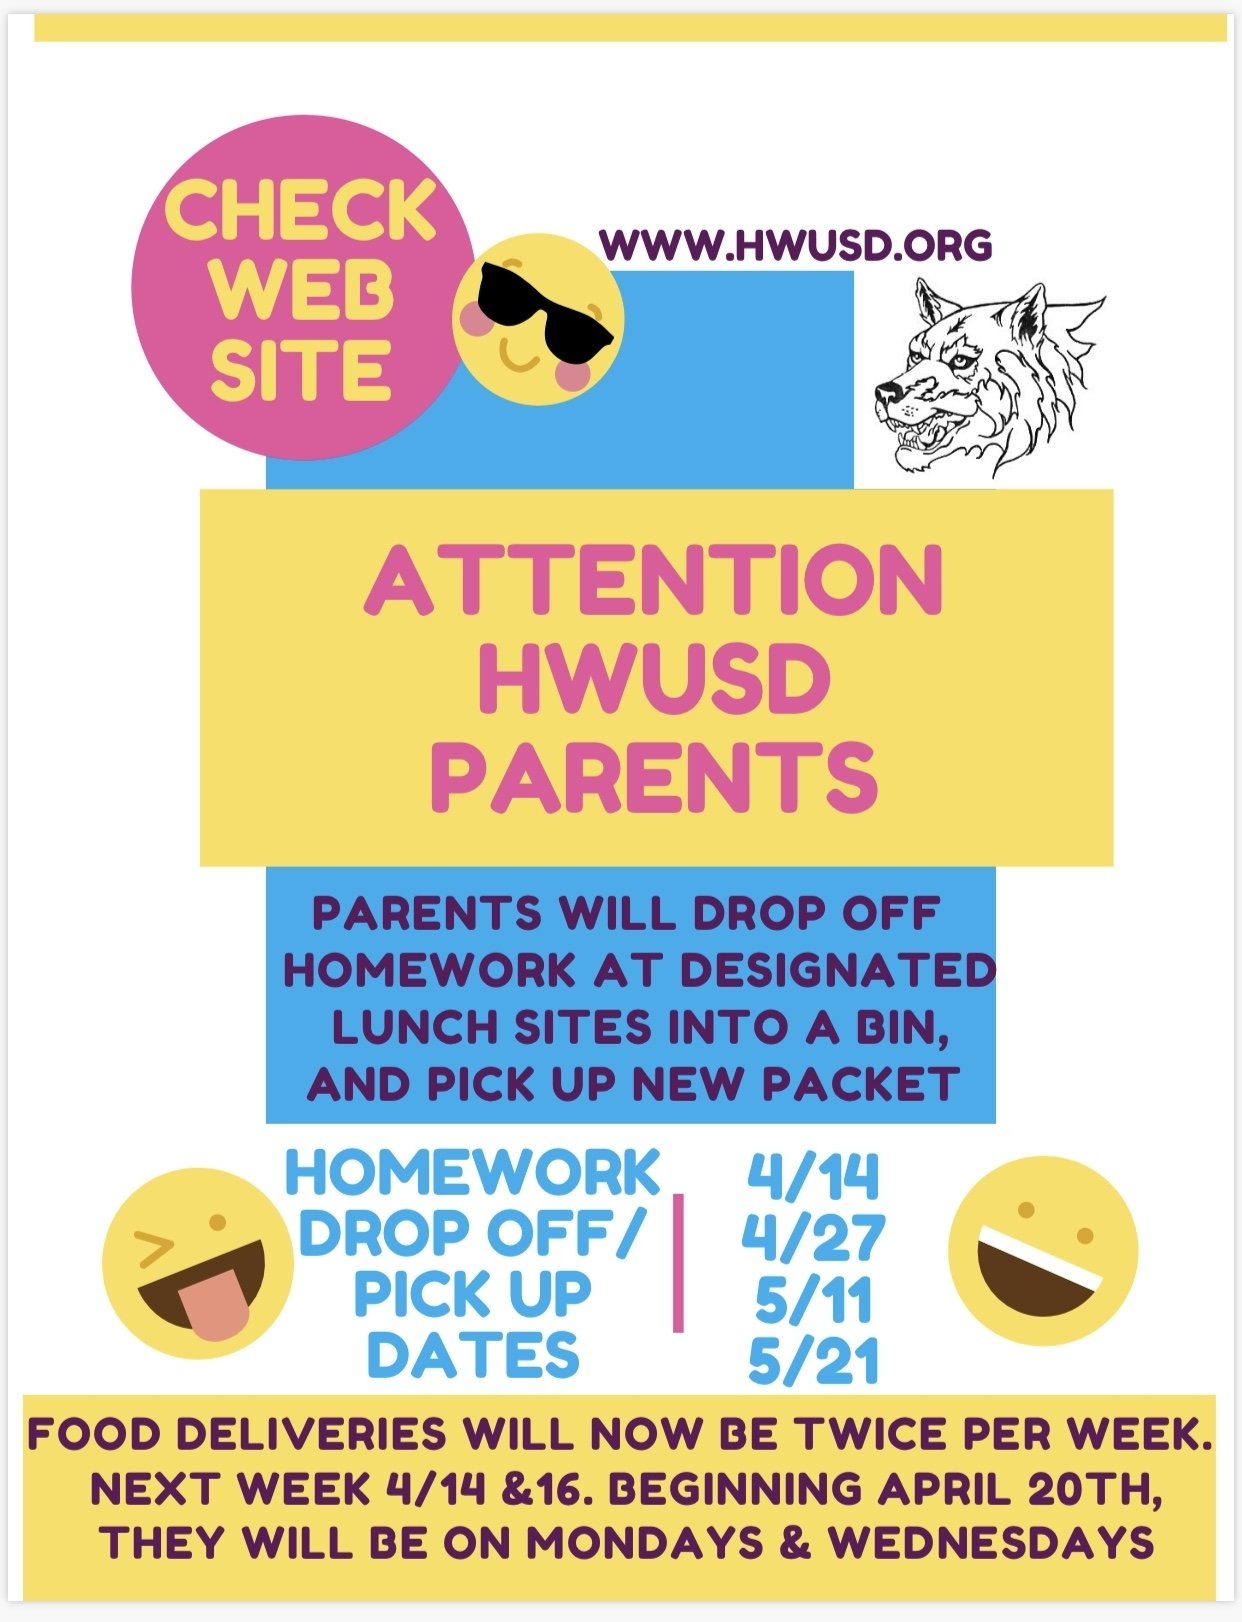 Homework/Lunch Drop off/Pick up Dates